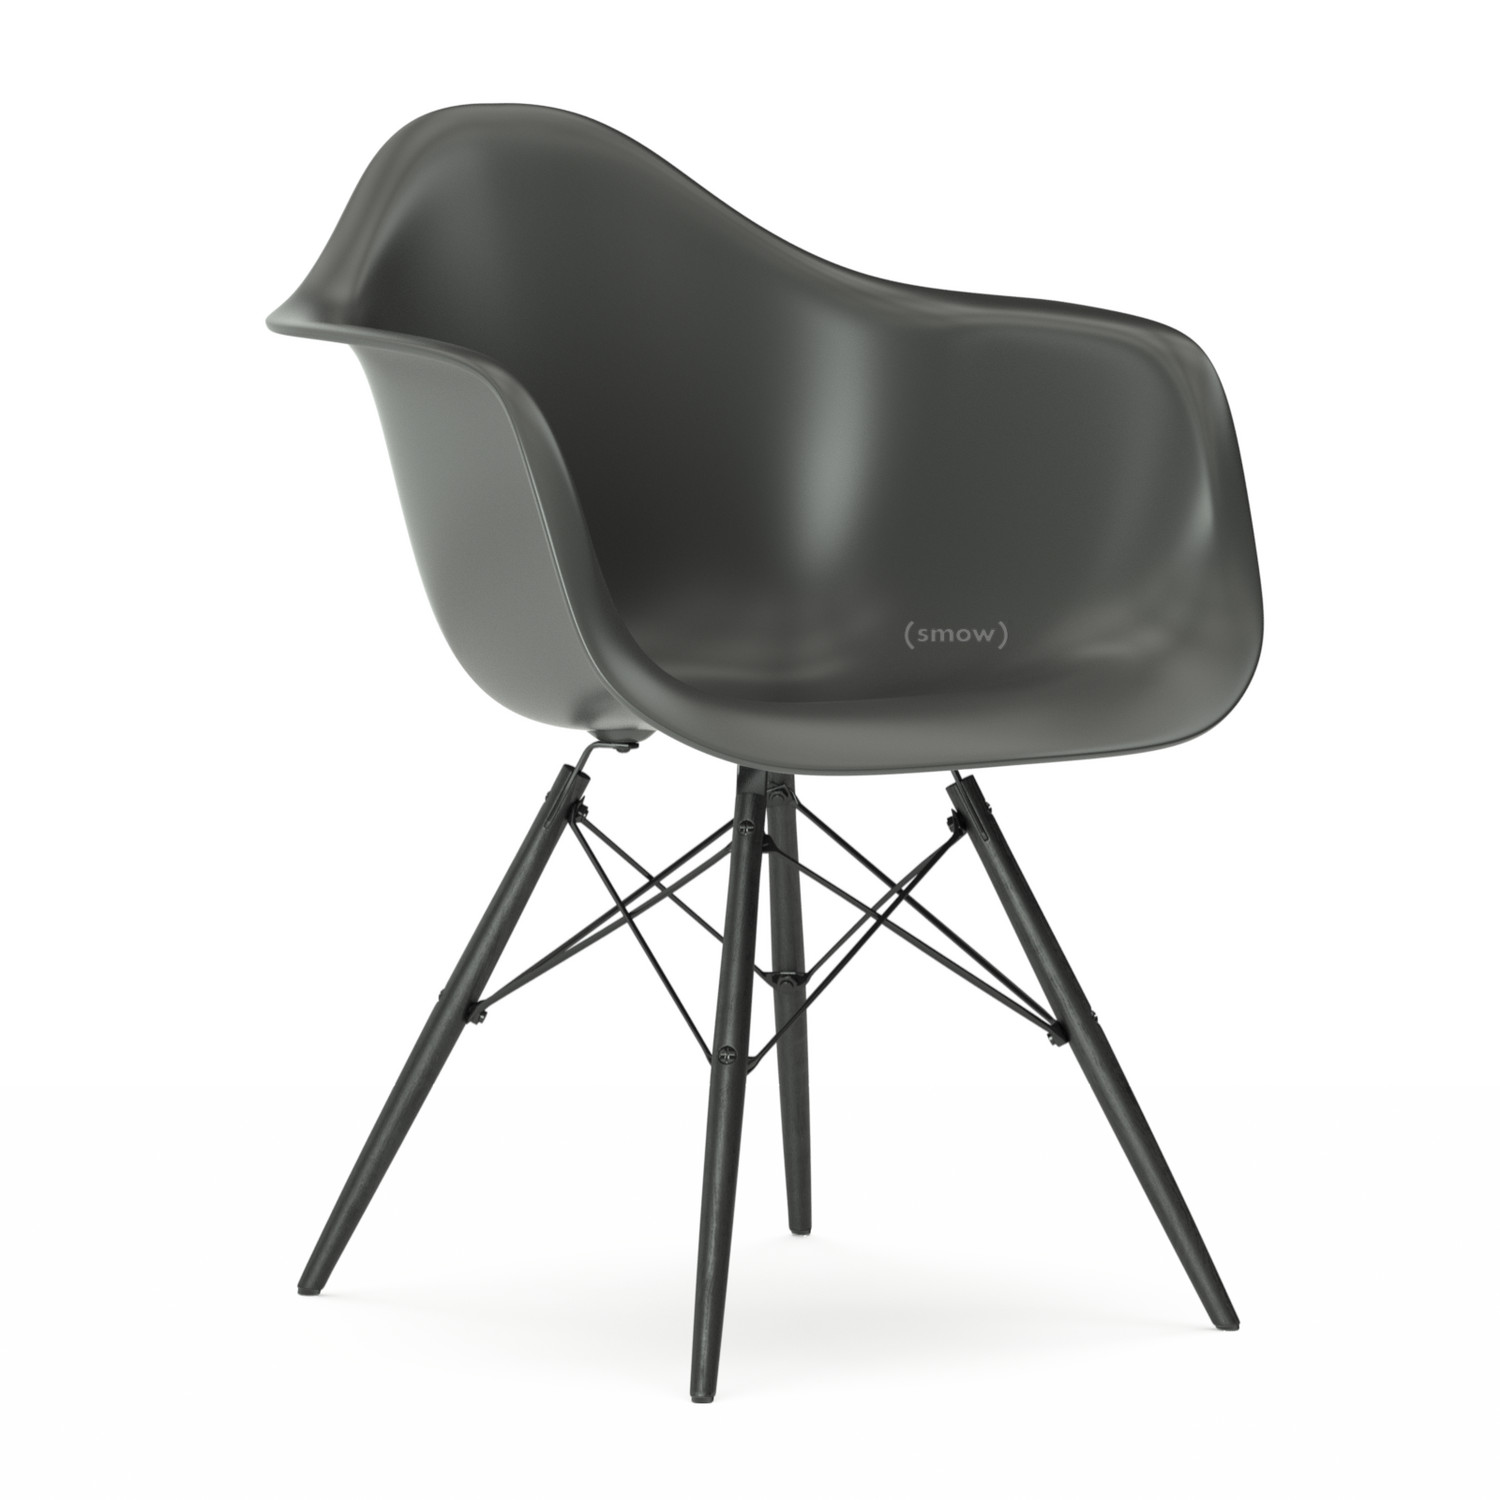 vitra eames plastic armchair daw by charles ray eames. Black Bedroom Furniture Sets. Home Design Ideas